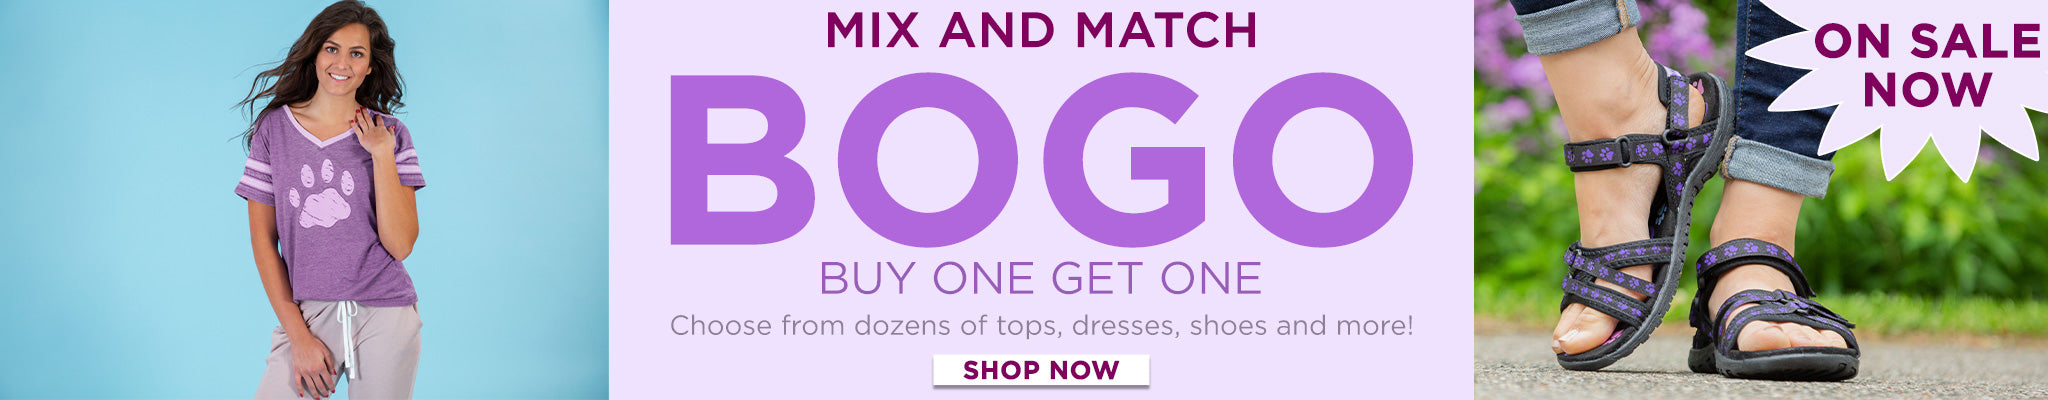 Buy One, Get One   Mix and Match   Choose from dozens of tops, dresses, shoes, and more!   Shop Now!